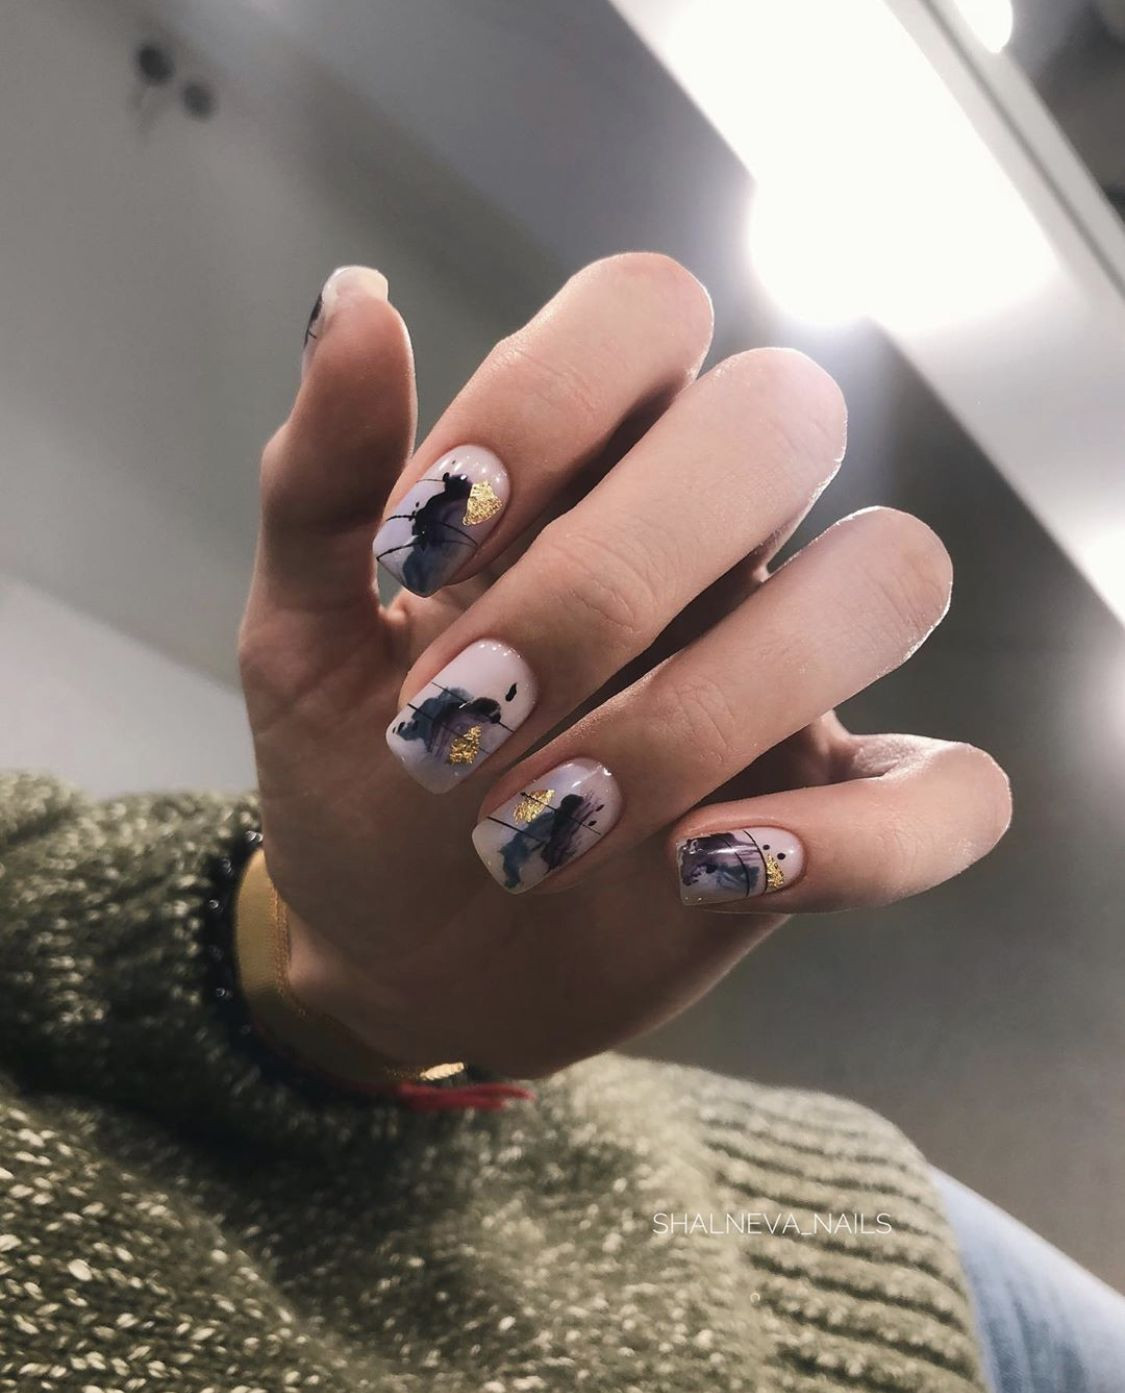 Pin By Anne Constantinova On Nails In 2020 Gold Nails